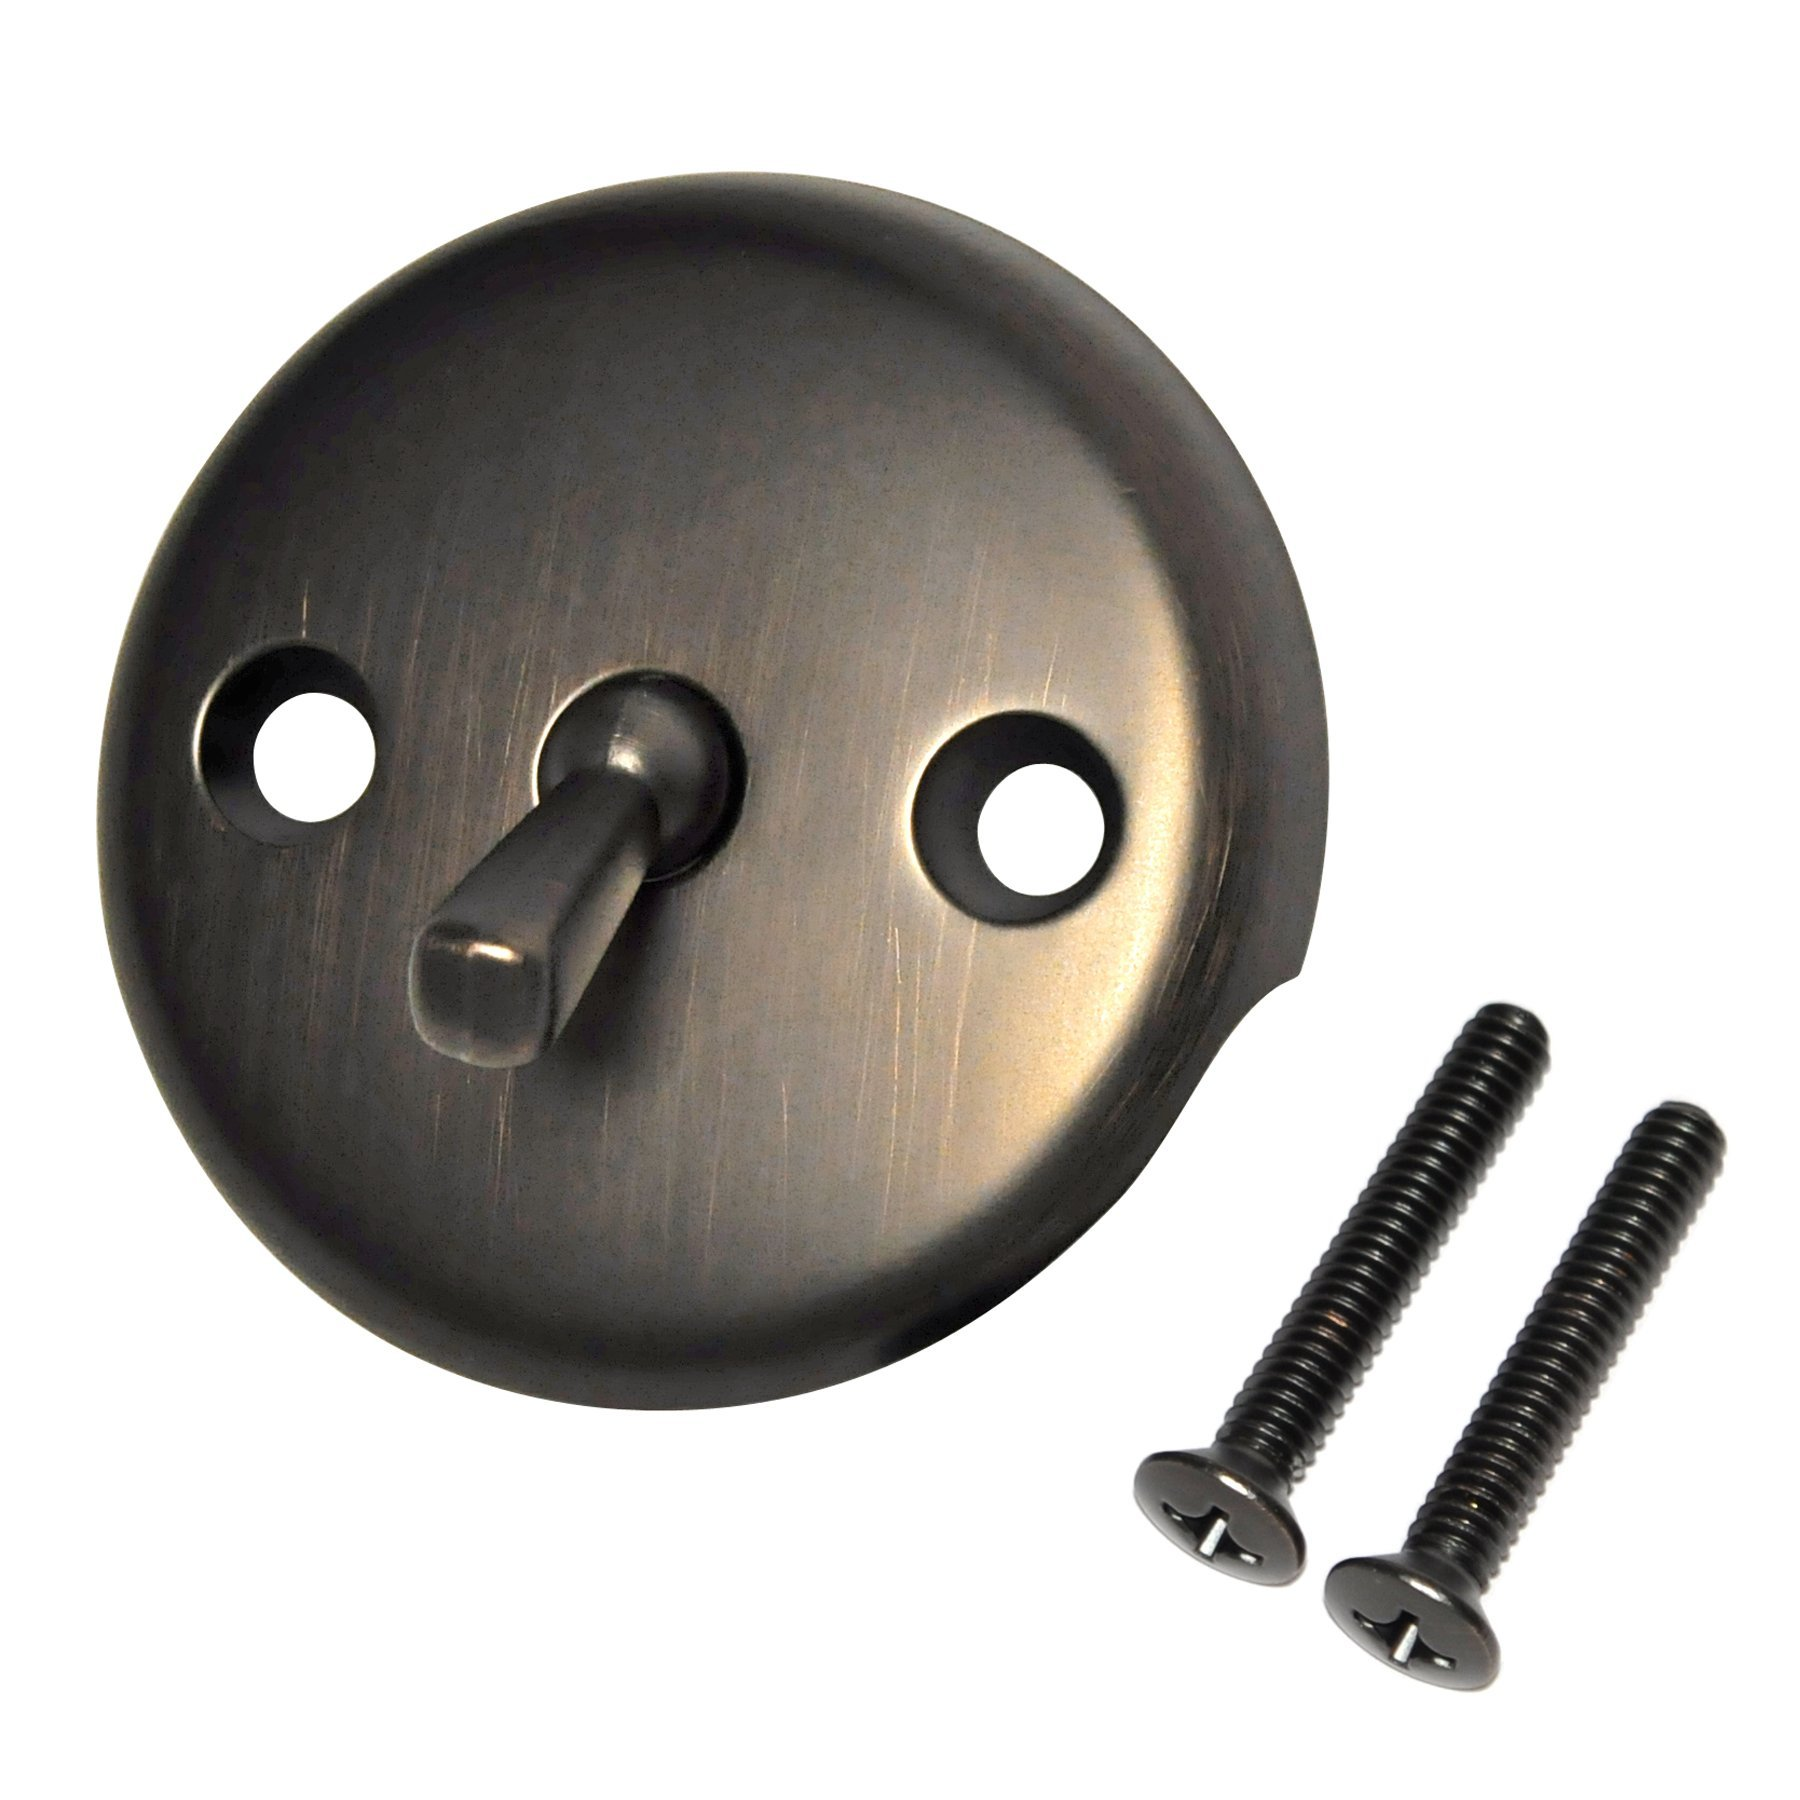 DANCO Overflow Plate with Trip Lever, Oil Rubbed Bronze, 1-Pack (89472) by Danco